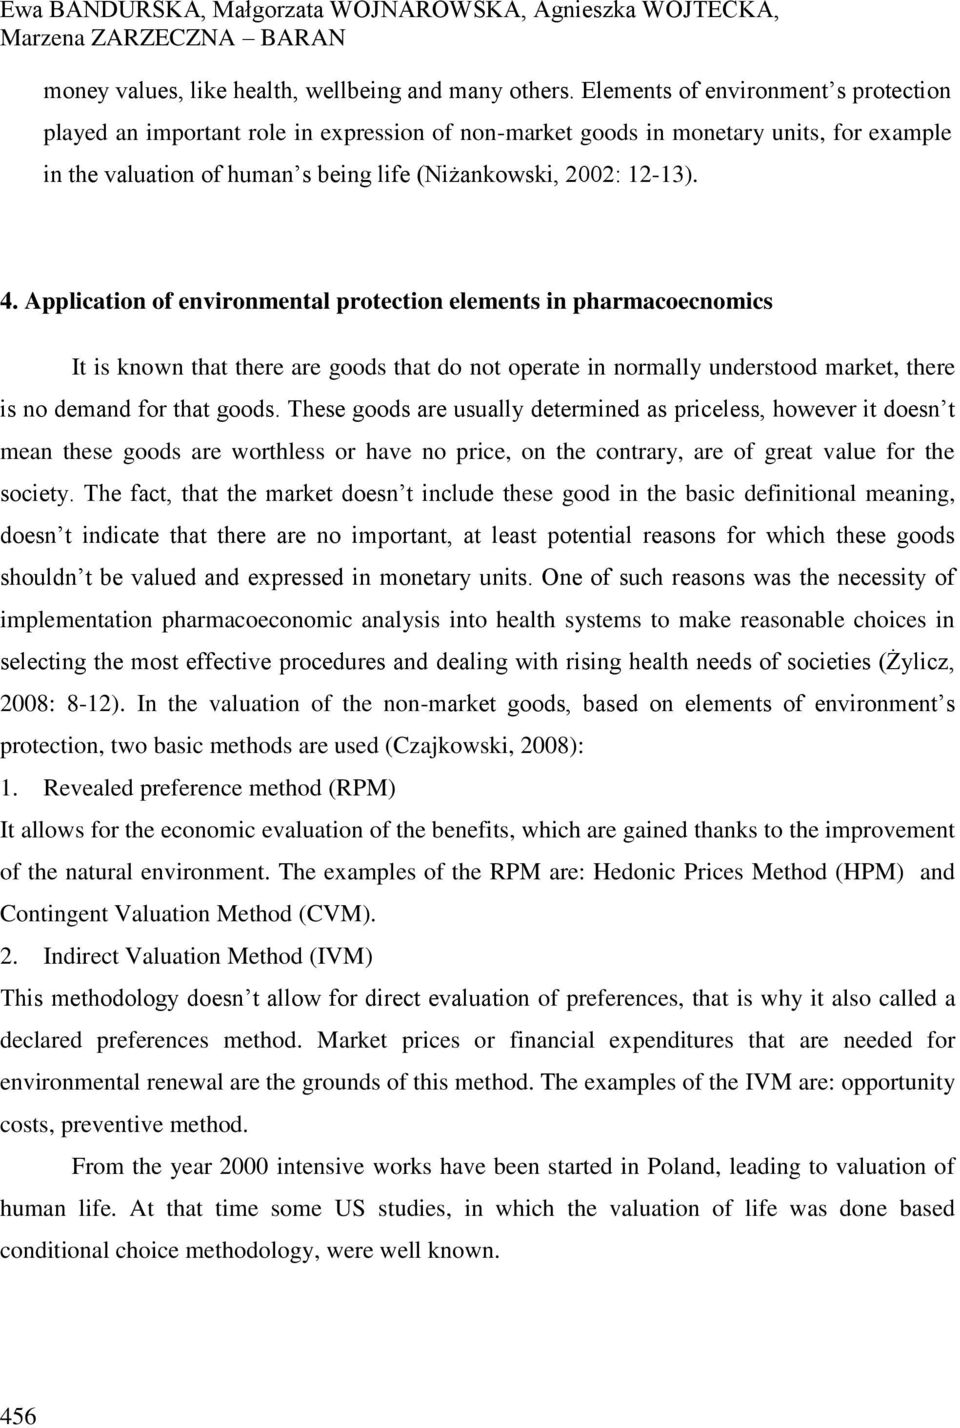 Application of environmental protection elements in pharmacoecnomics It is known that there are goods that do not operate in normally understood market, there is no demand for that goods.